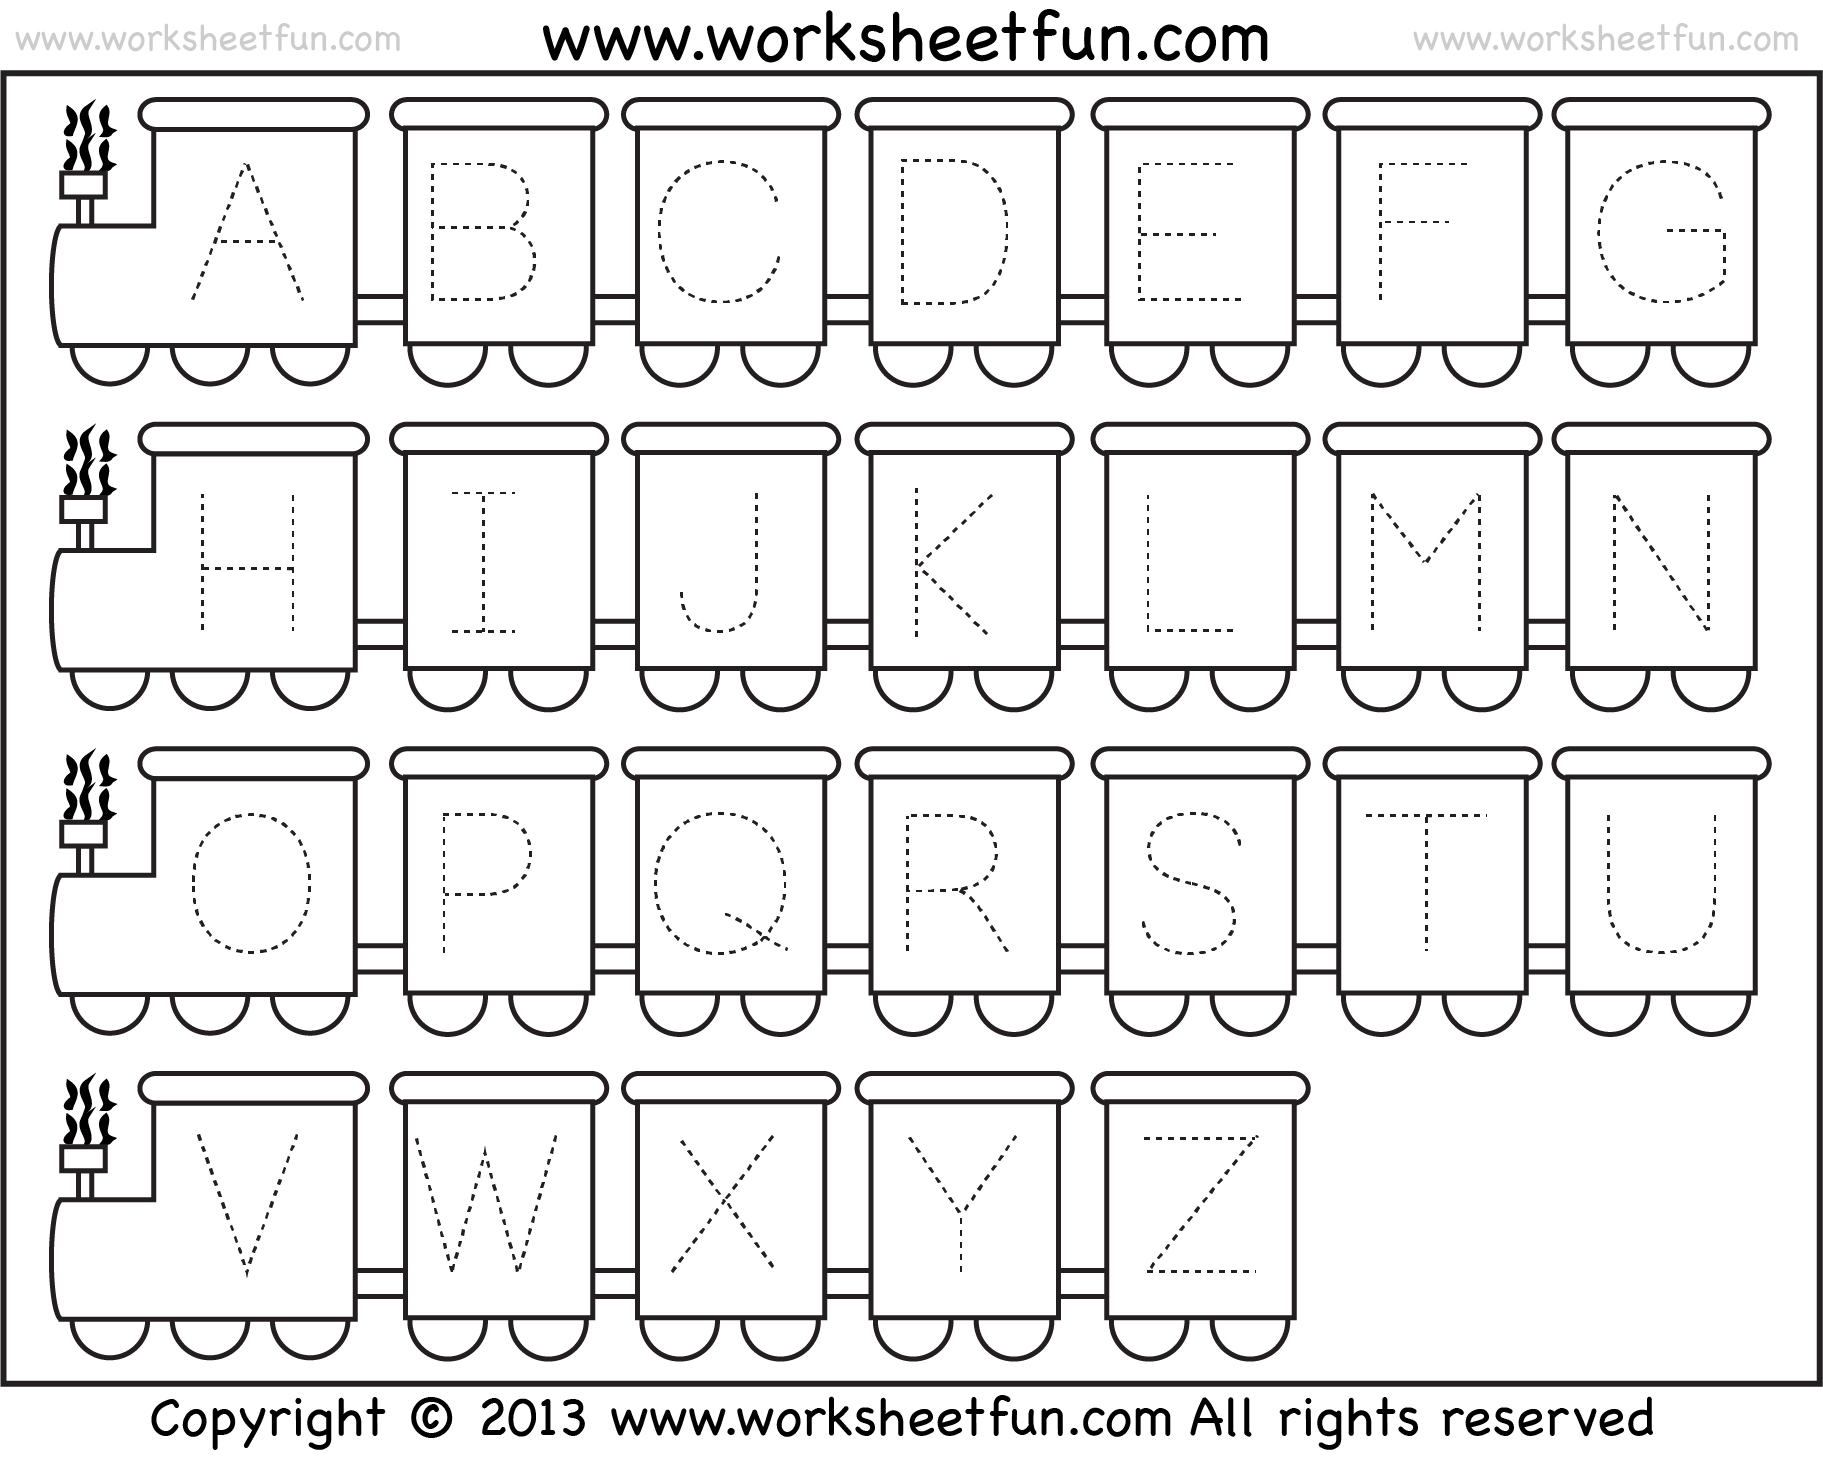 Letter Tracing Worksheet Train Theme FREE Printable Worksheets – Free Alphabet Tracing Worksheets